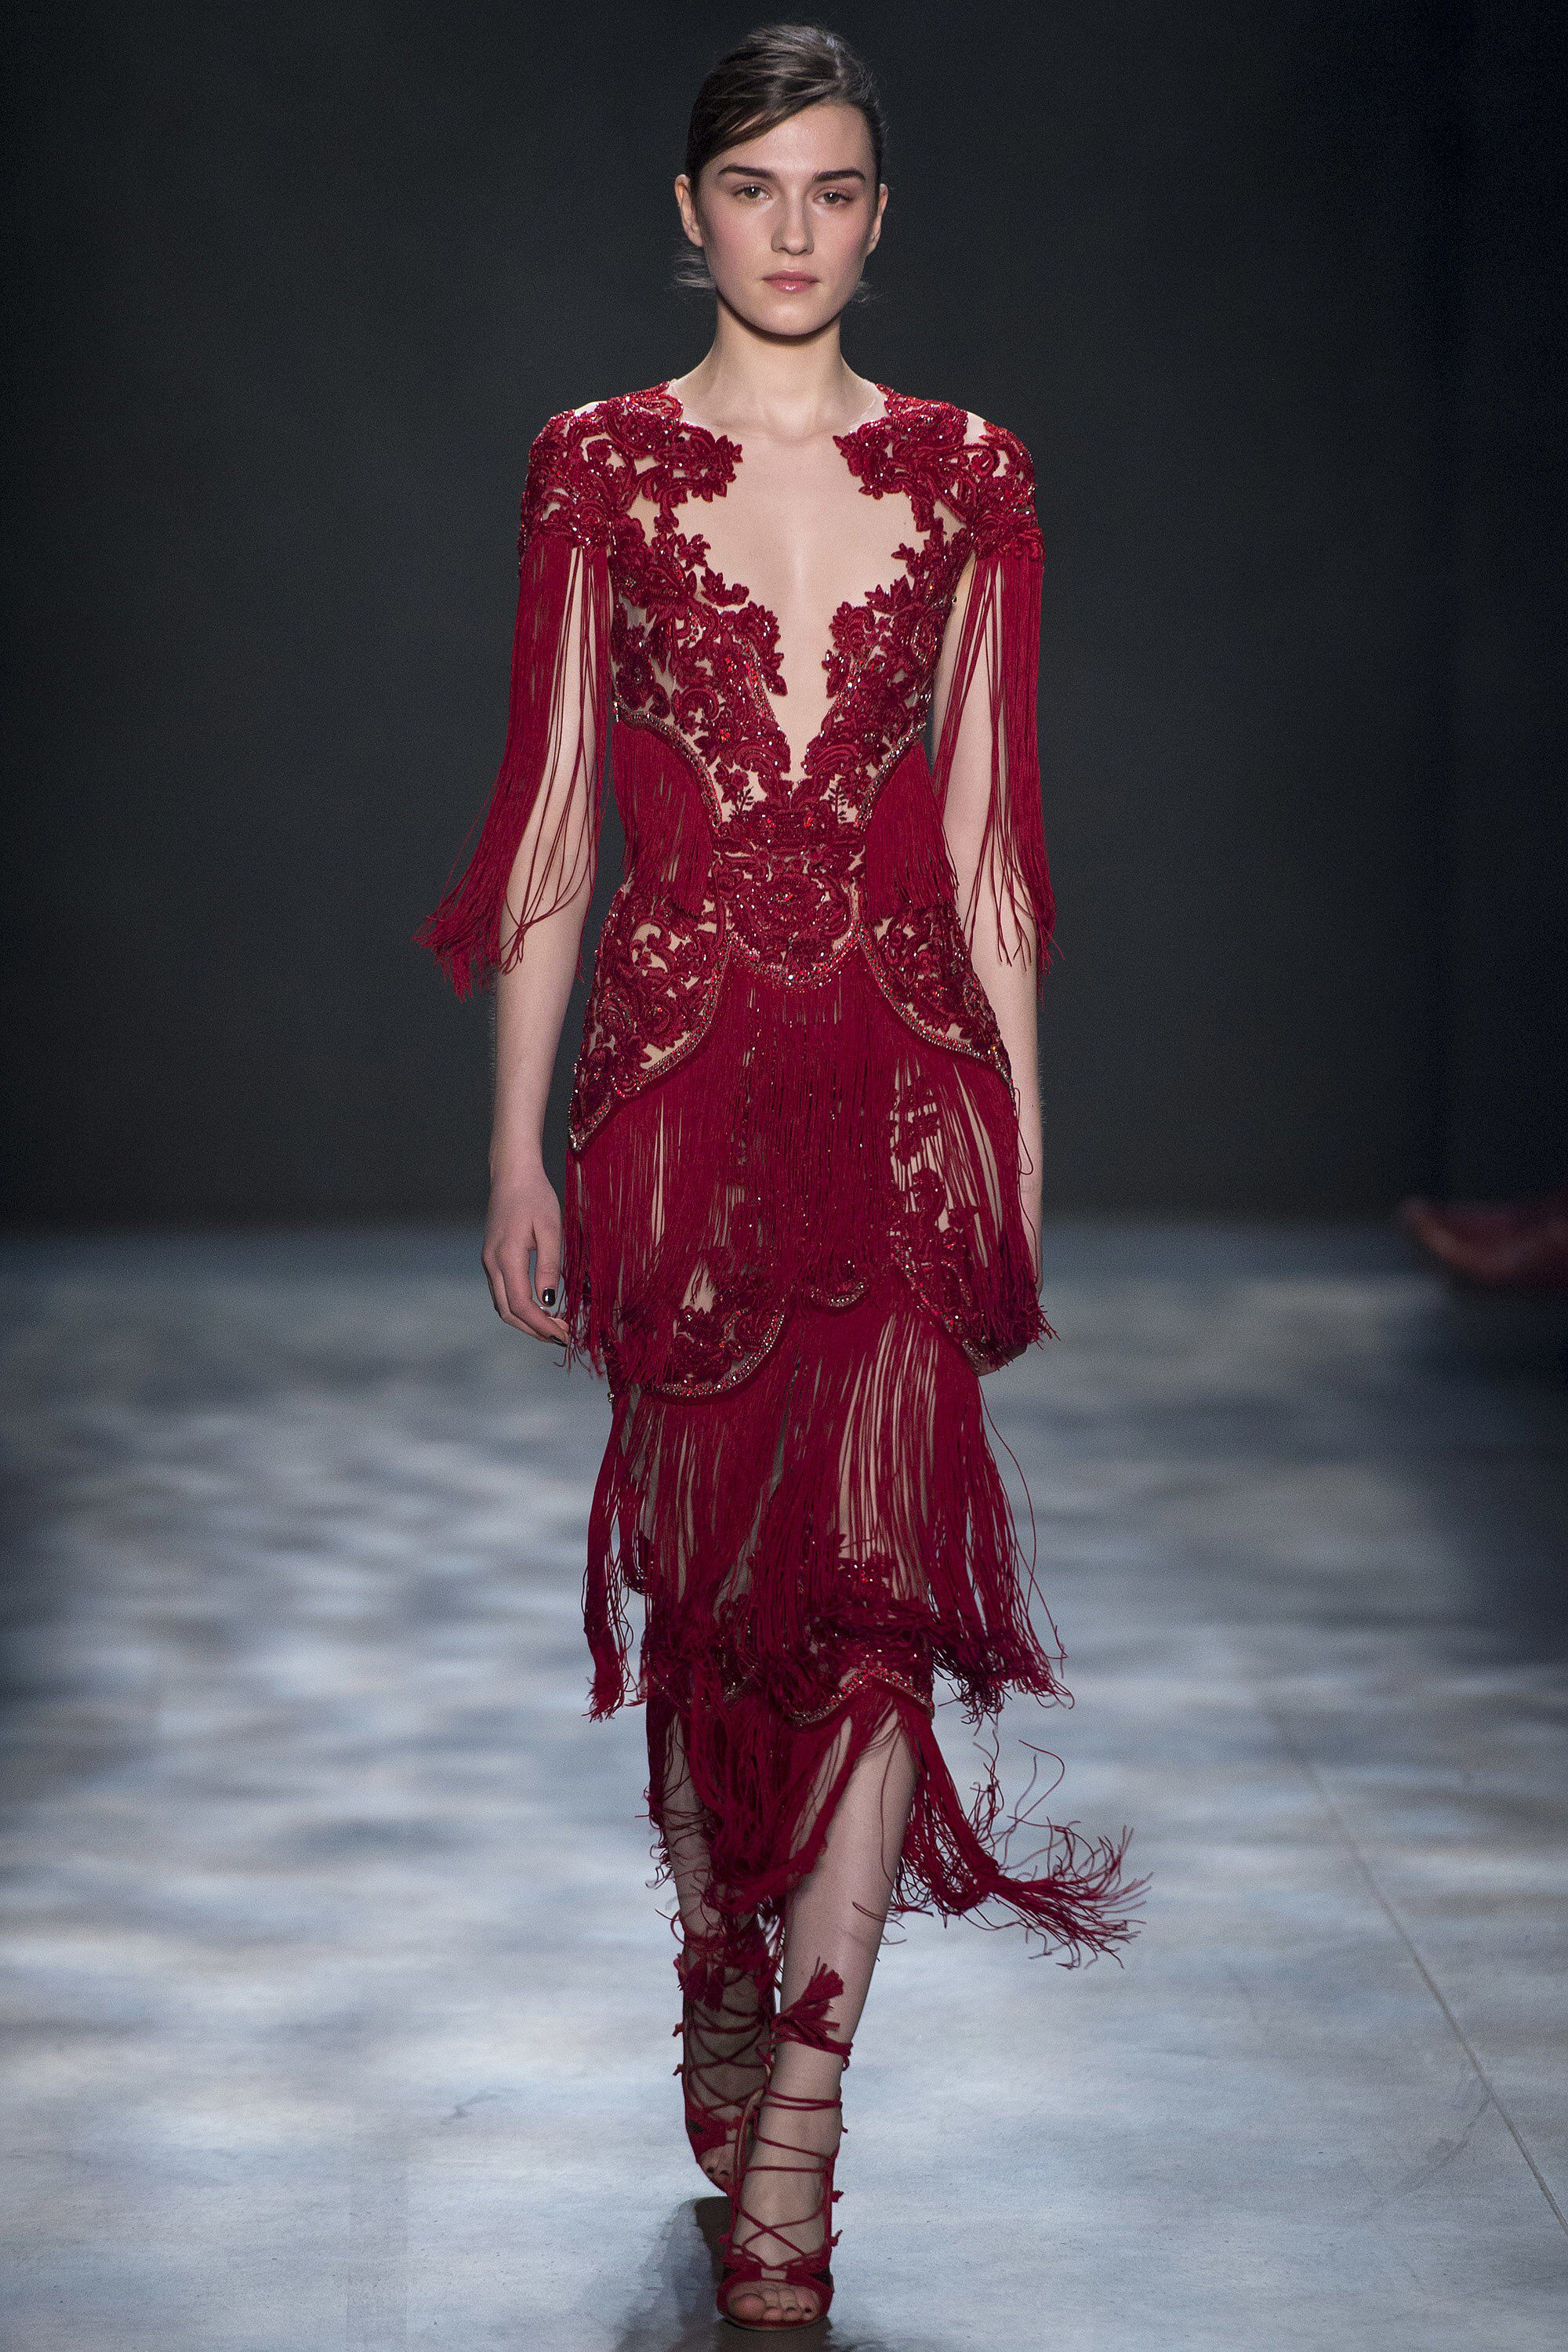 Red dress collection fall 2017 runway